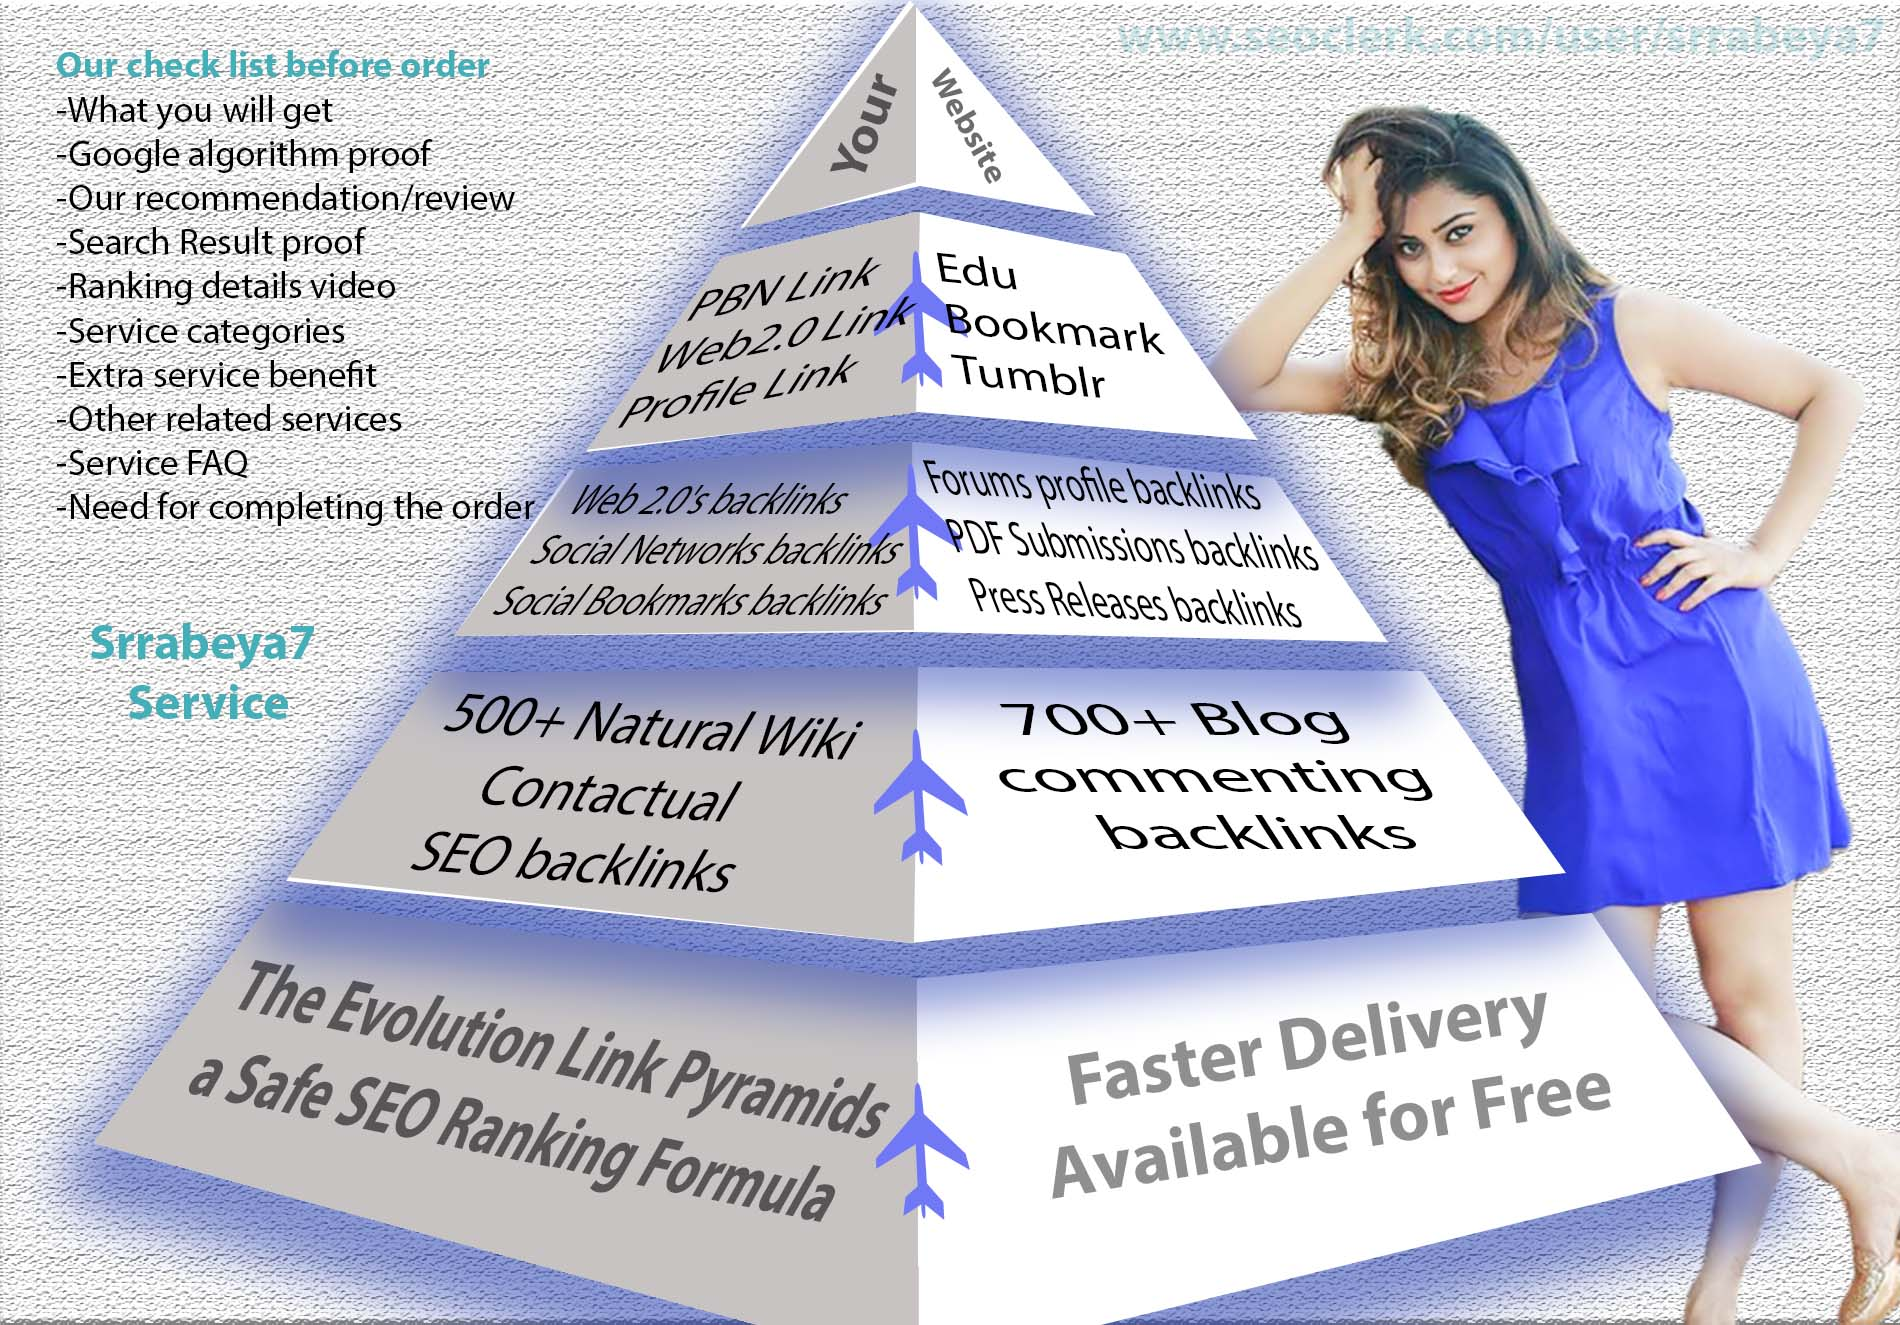 Evolution Link Pyramids a Powerful Safe SEO Ranking Formula 2021 Latest Update